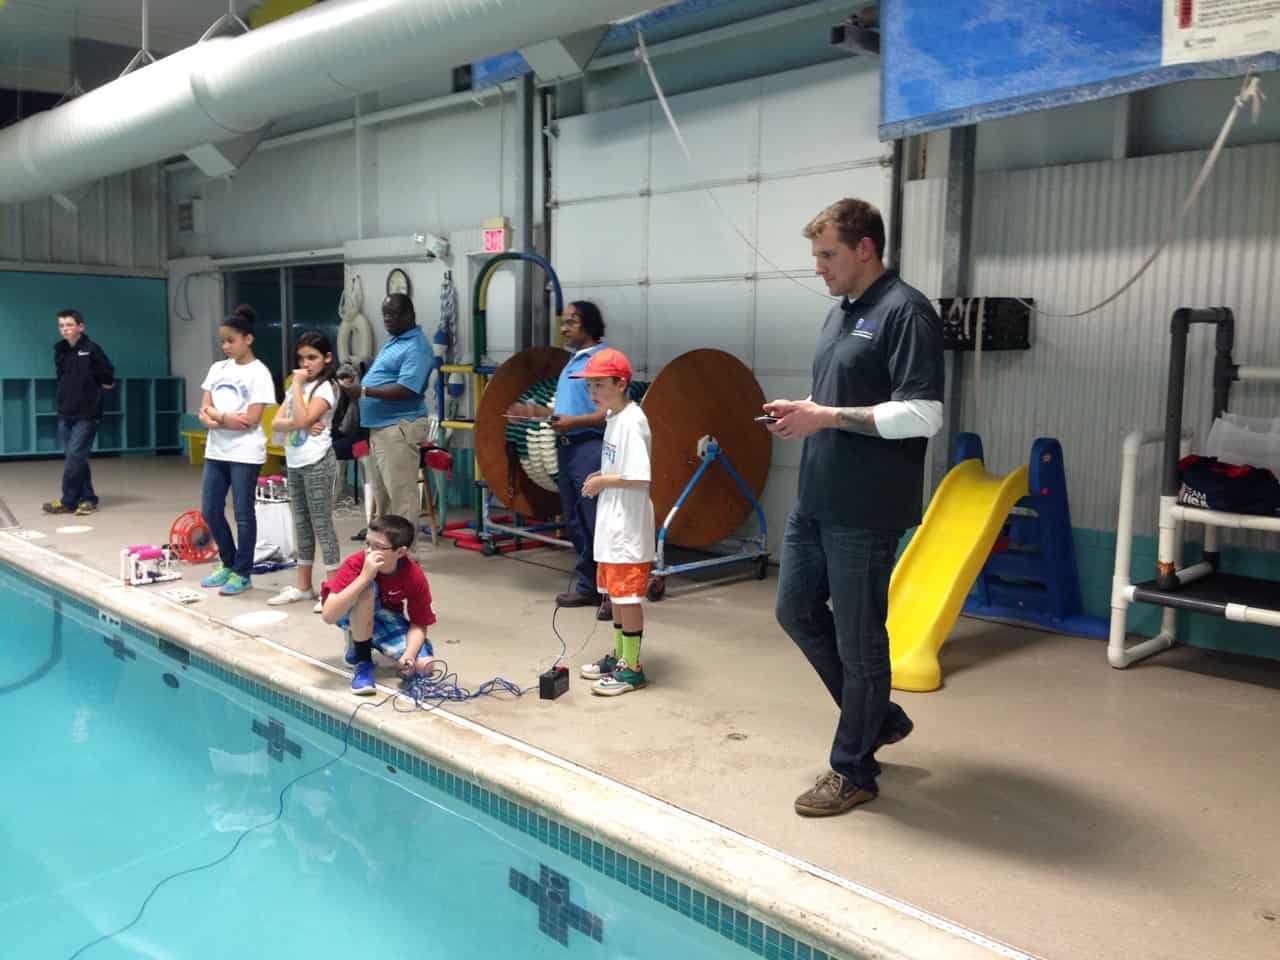 Students stand on side of pool as they control their SeaPerch robots using a remots control.